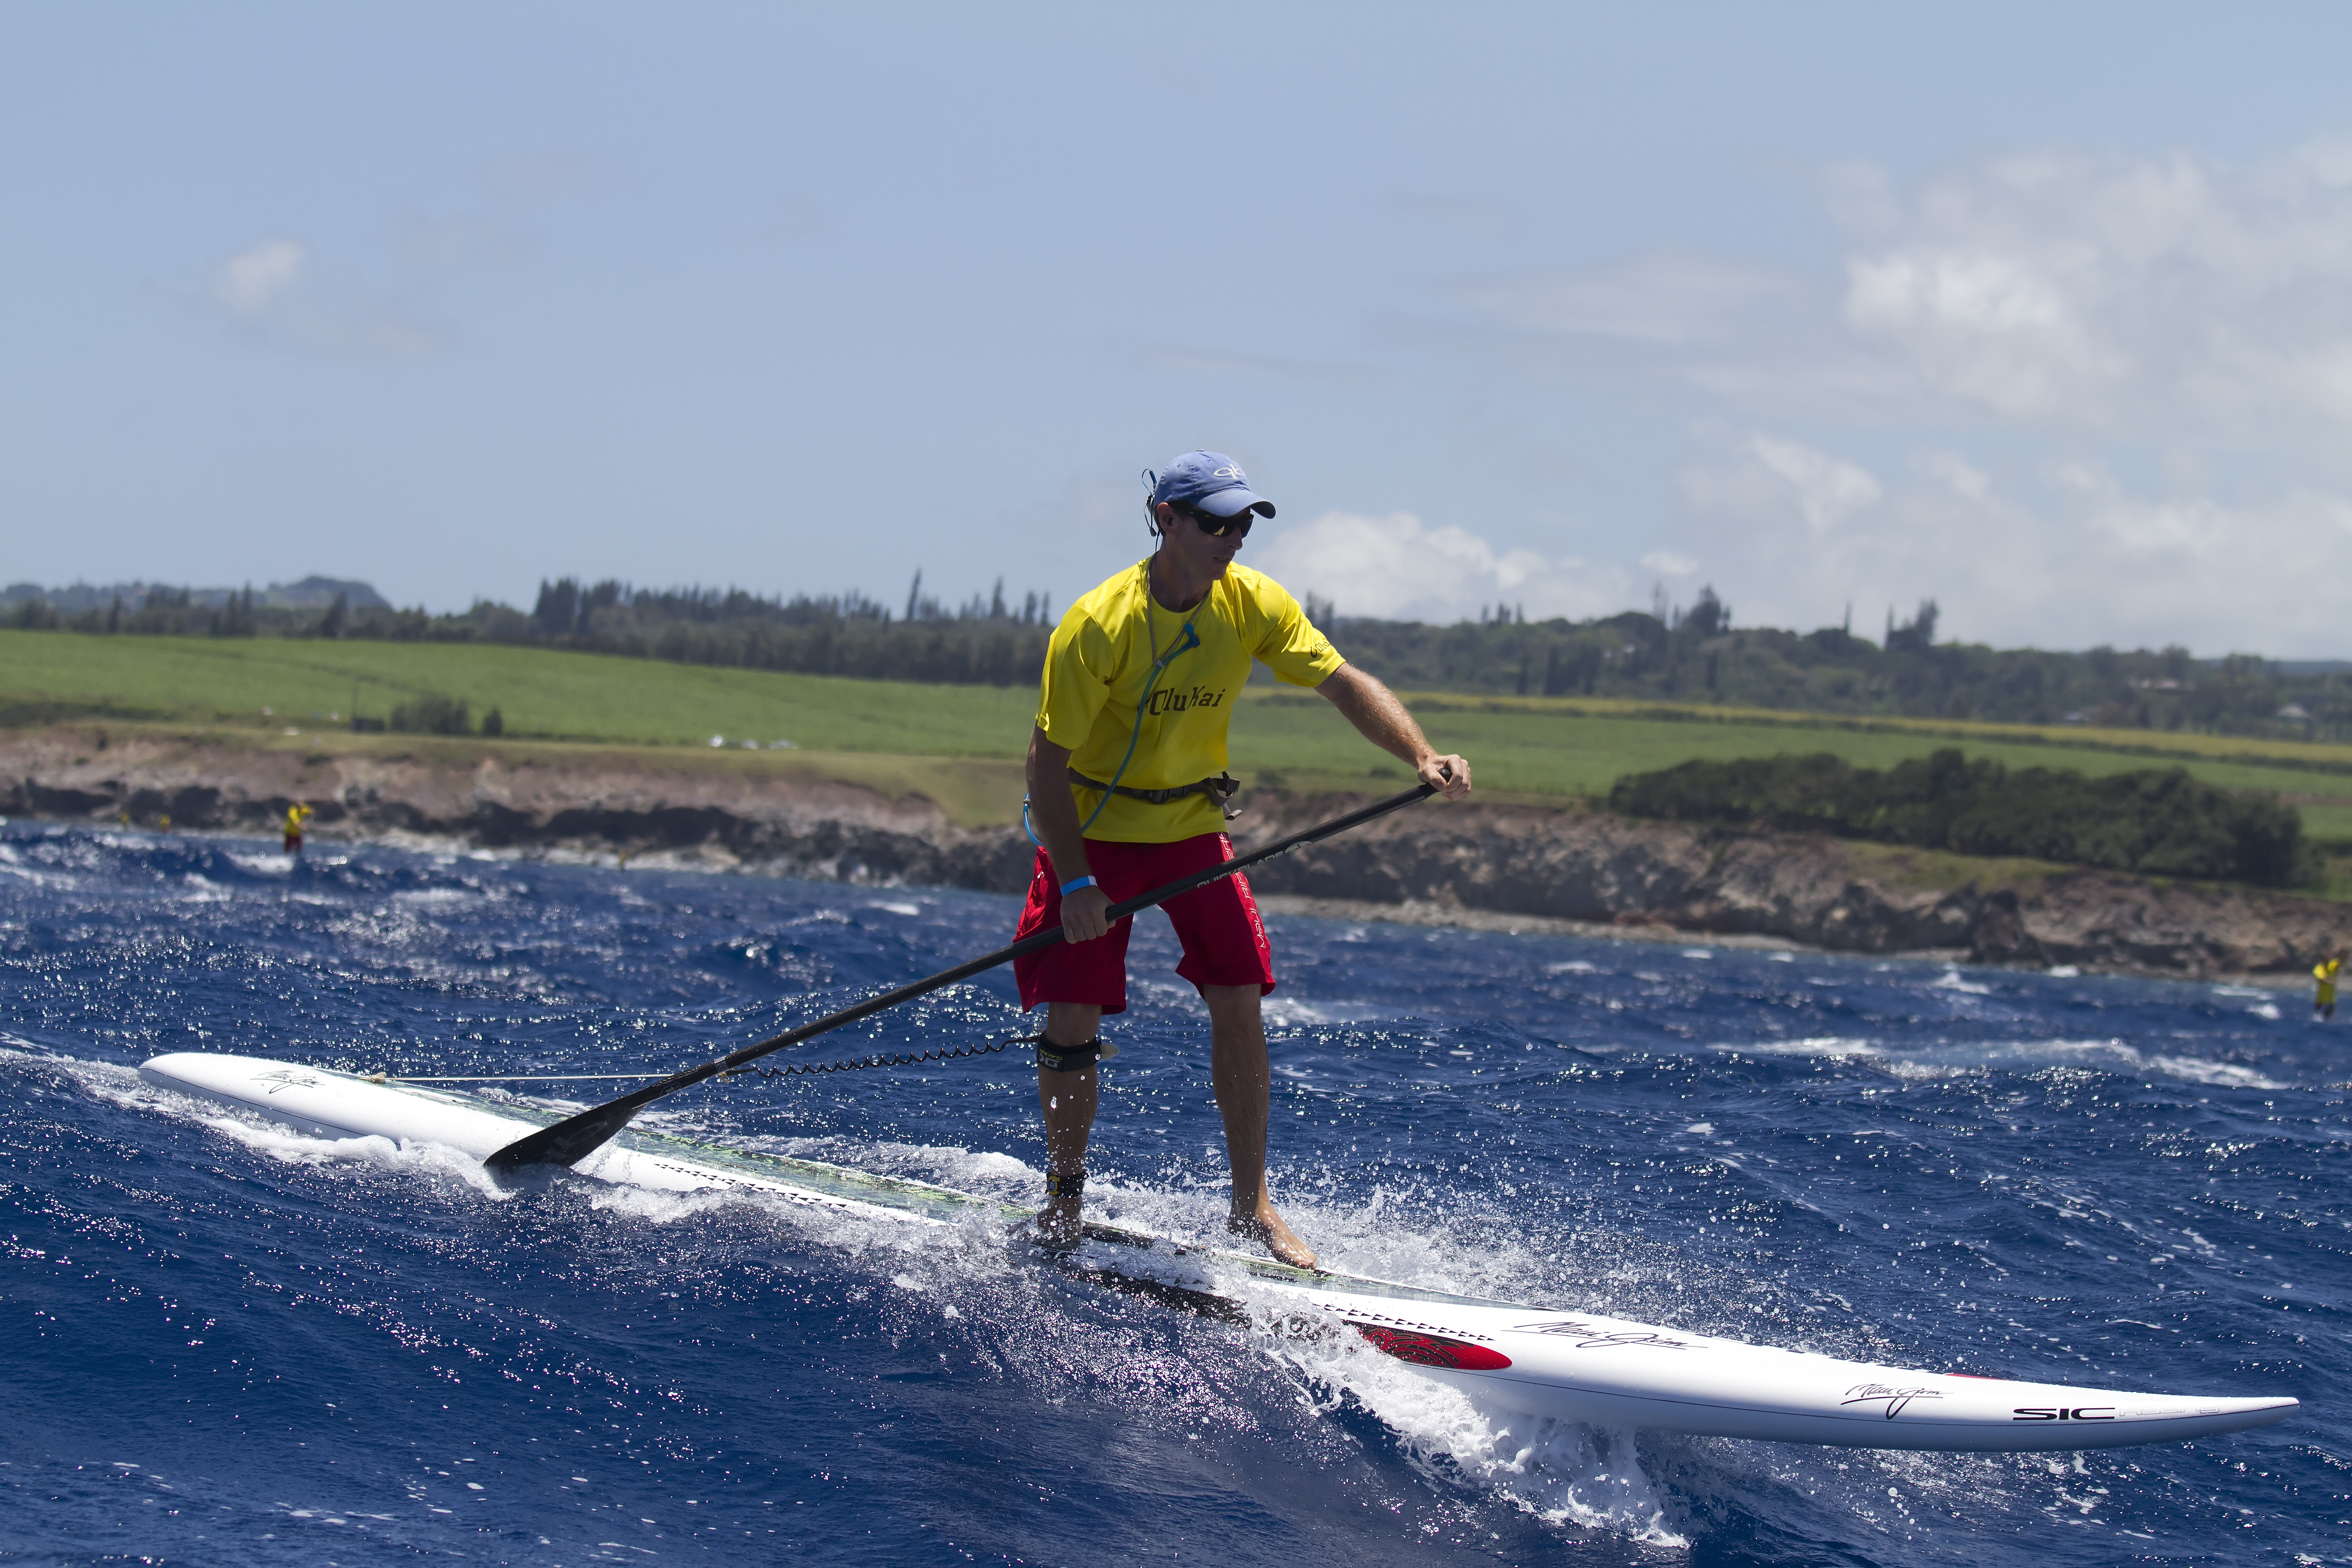 Paddle with Riggs SUP Downwind Maliko